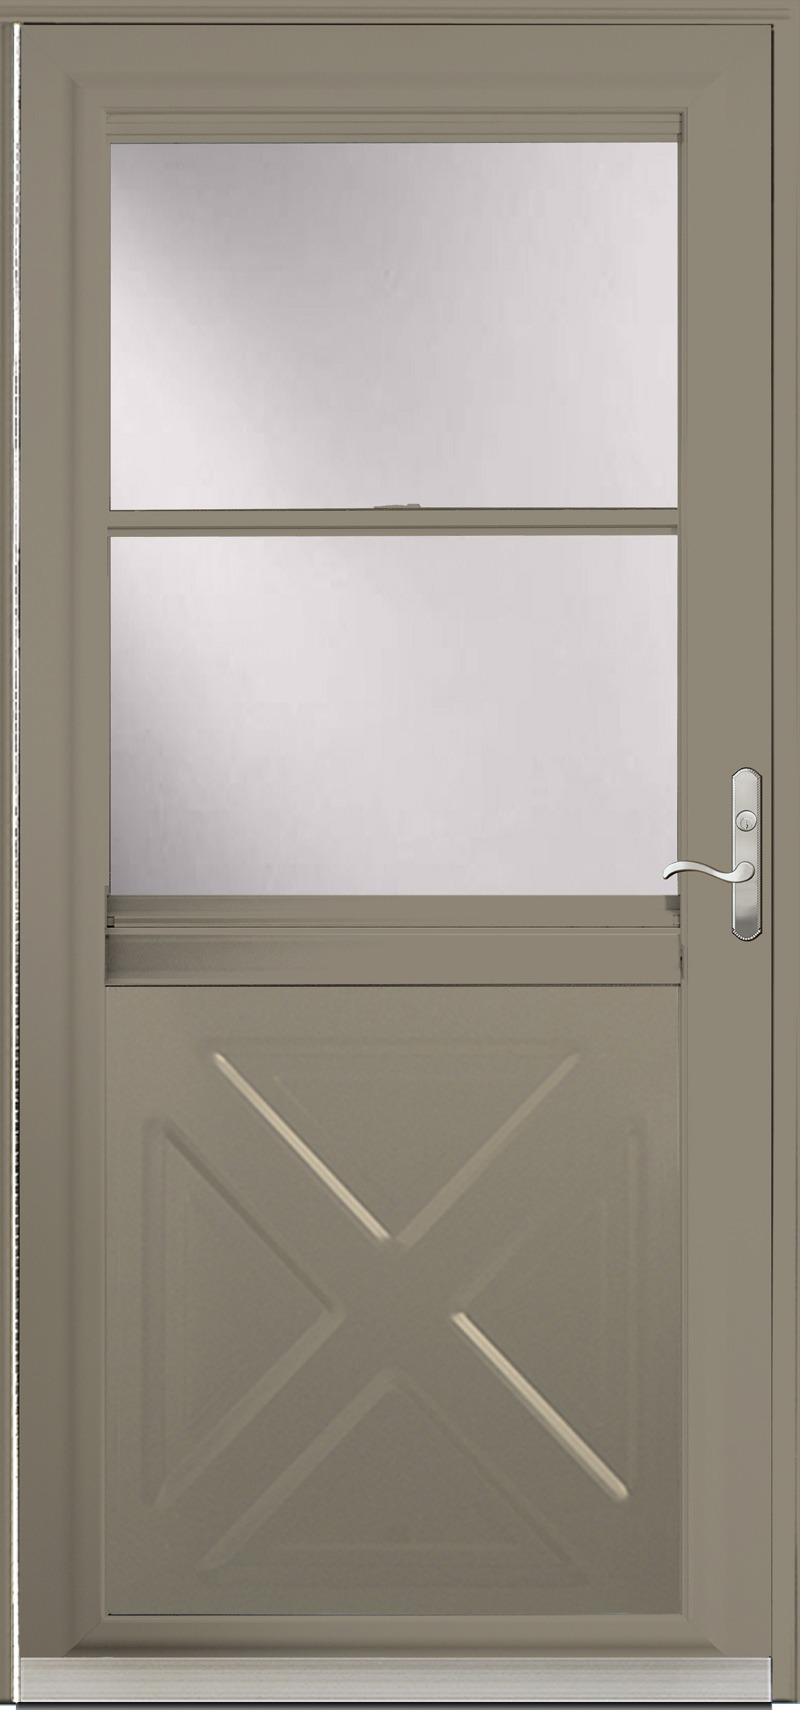 A Tan door with glass in the upper half